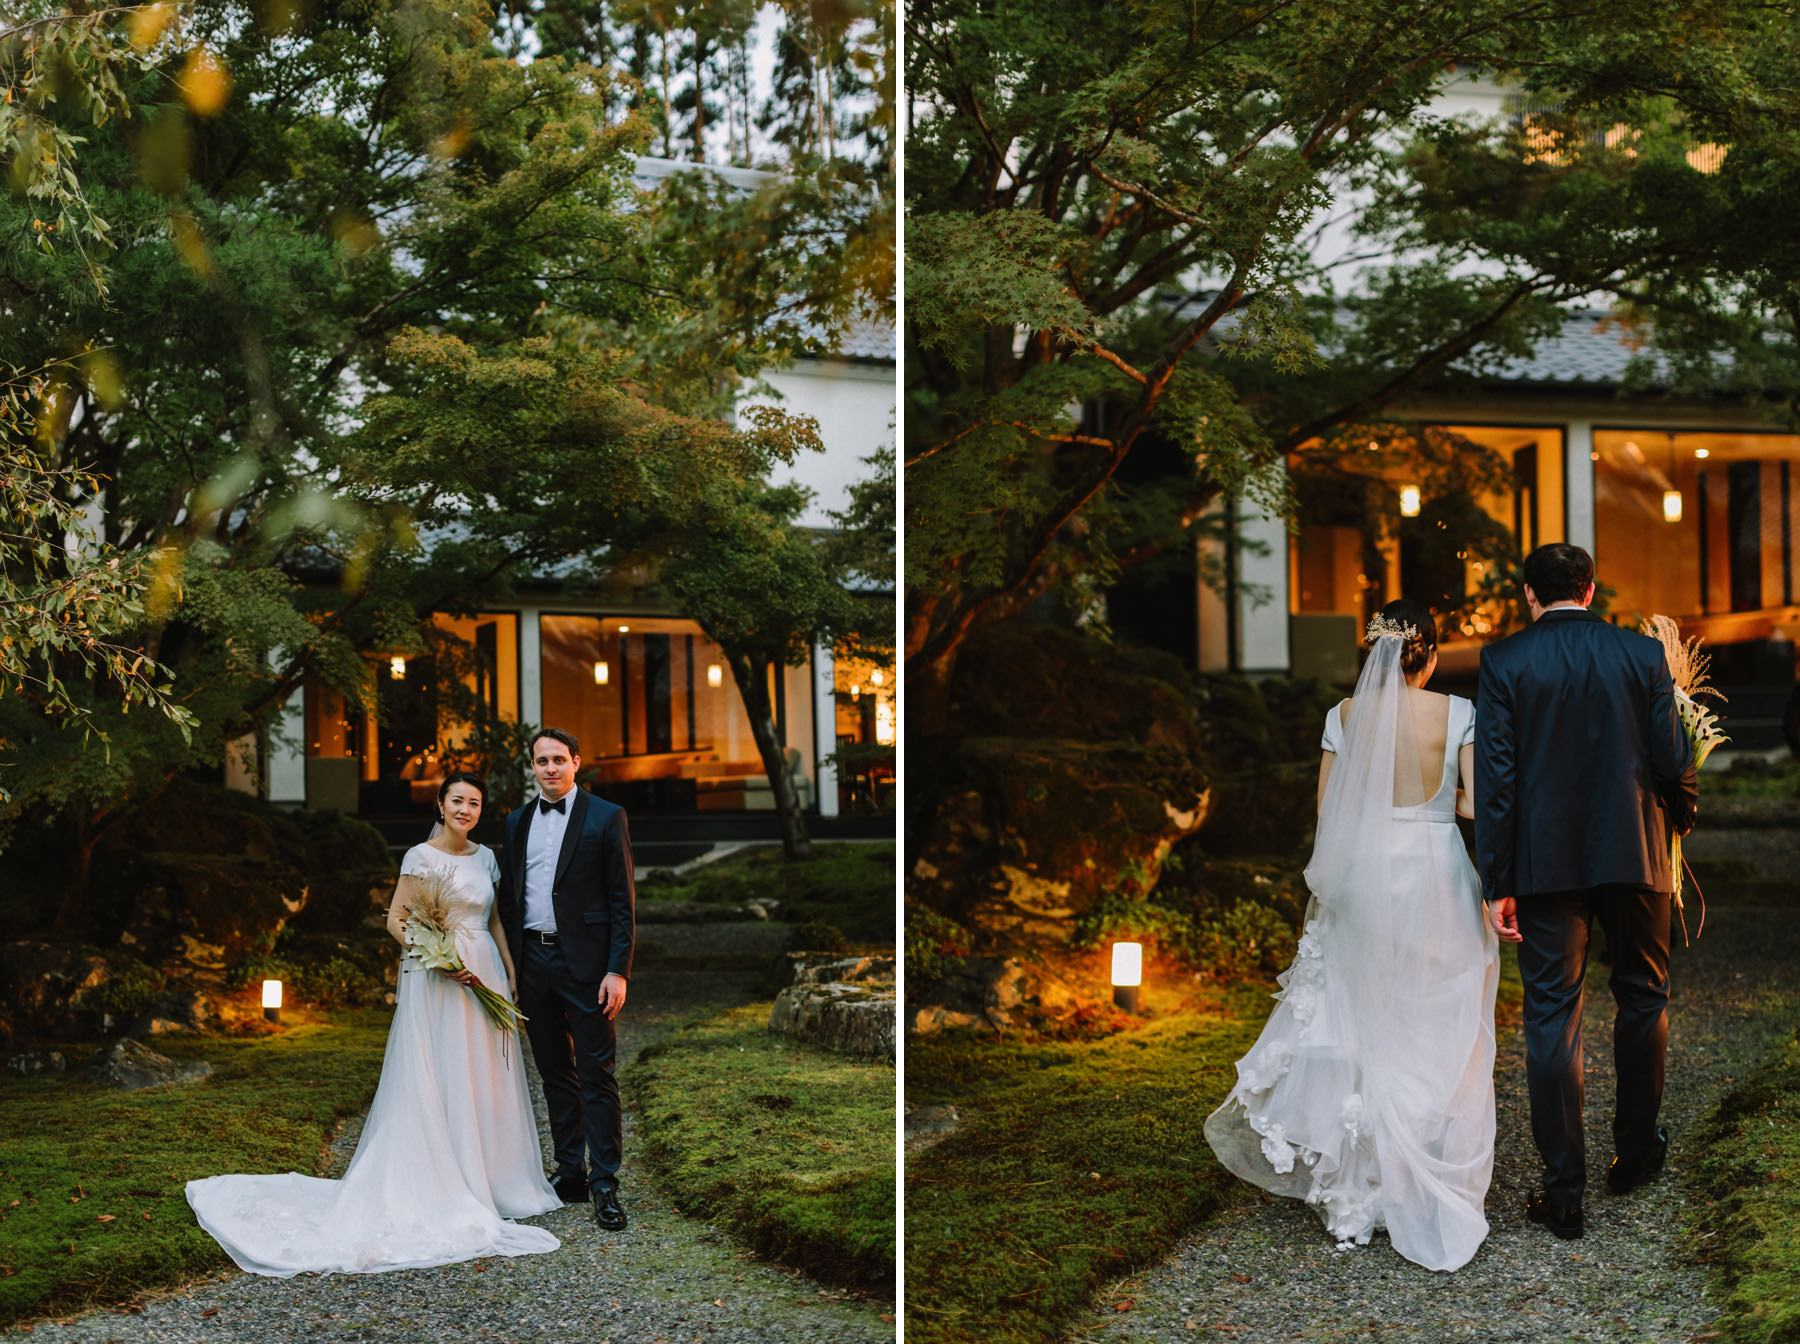 Shozan resort garden wedding Kyoto